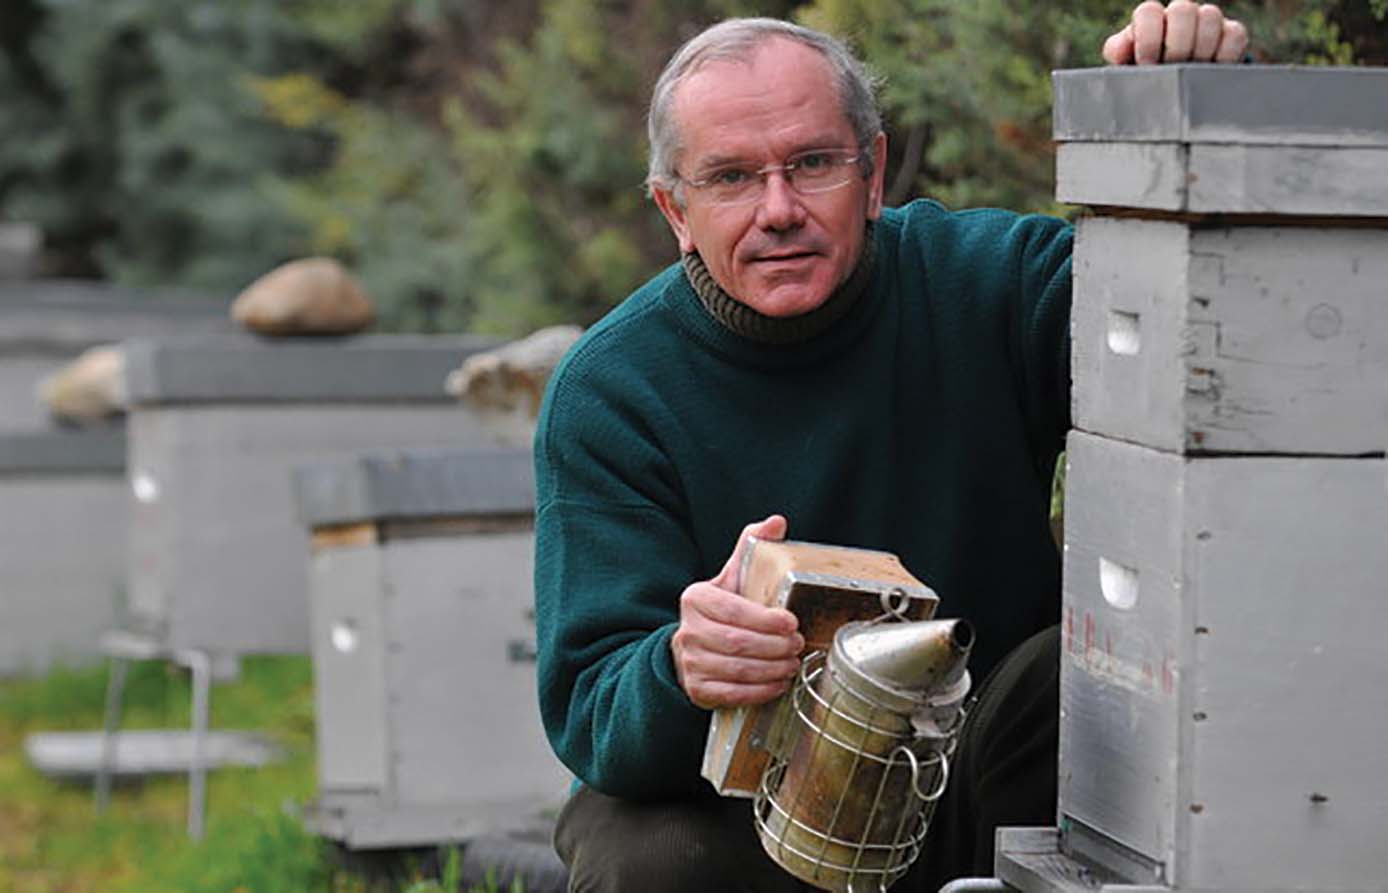 Yves Le Conte, Director of the French National Bee Lab (l'Institut National de la Recherche Agronomique, INRA) at Avignon, is studying an apiary of Varroa-resistant honey bees. (photo by Jérôme Rey)